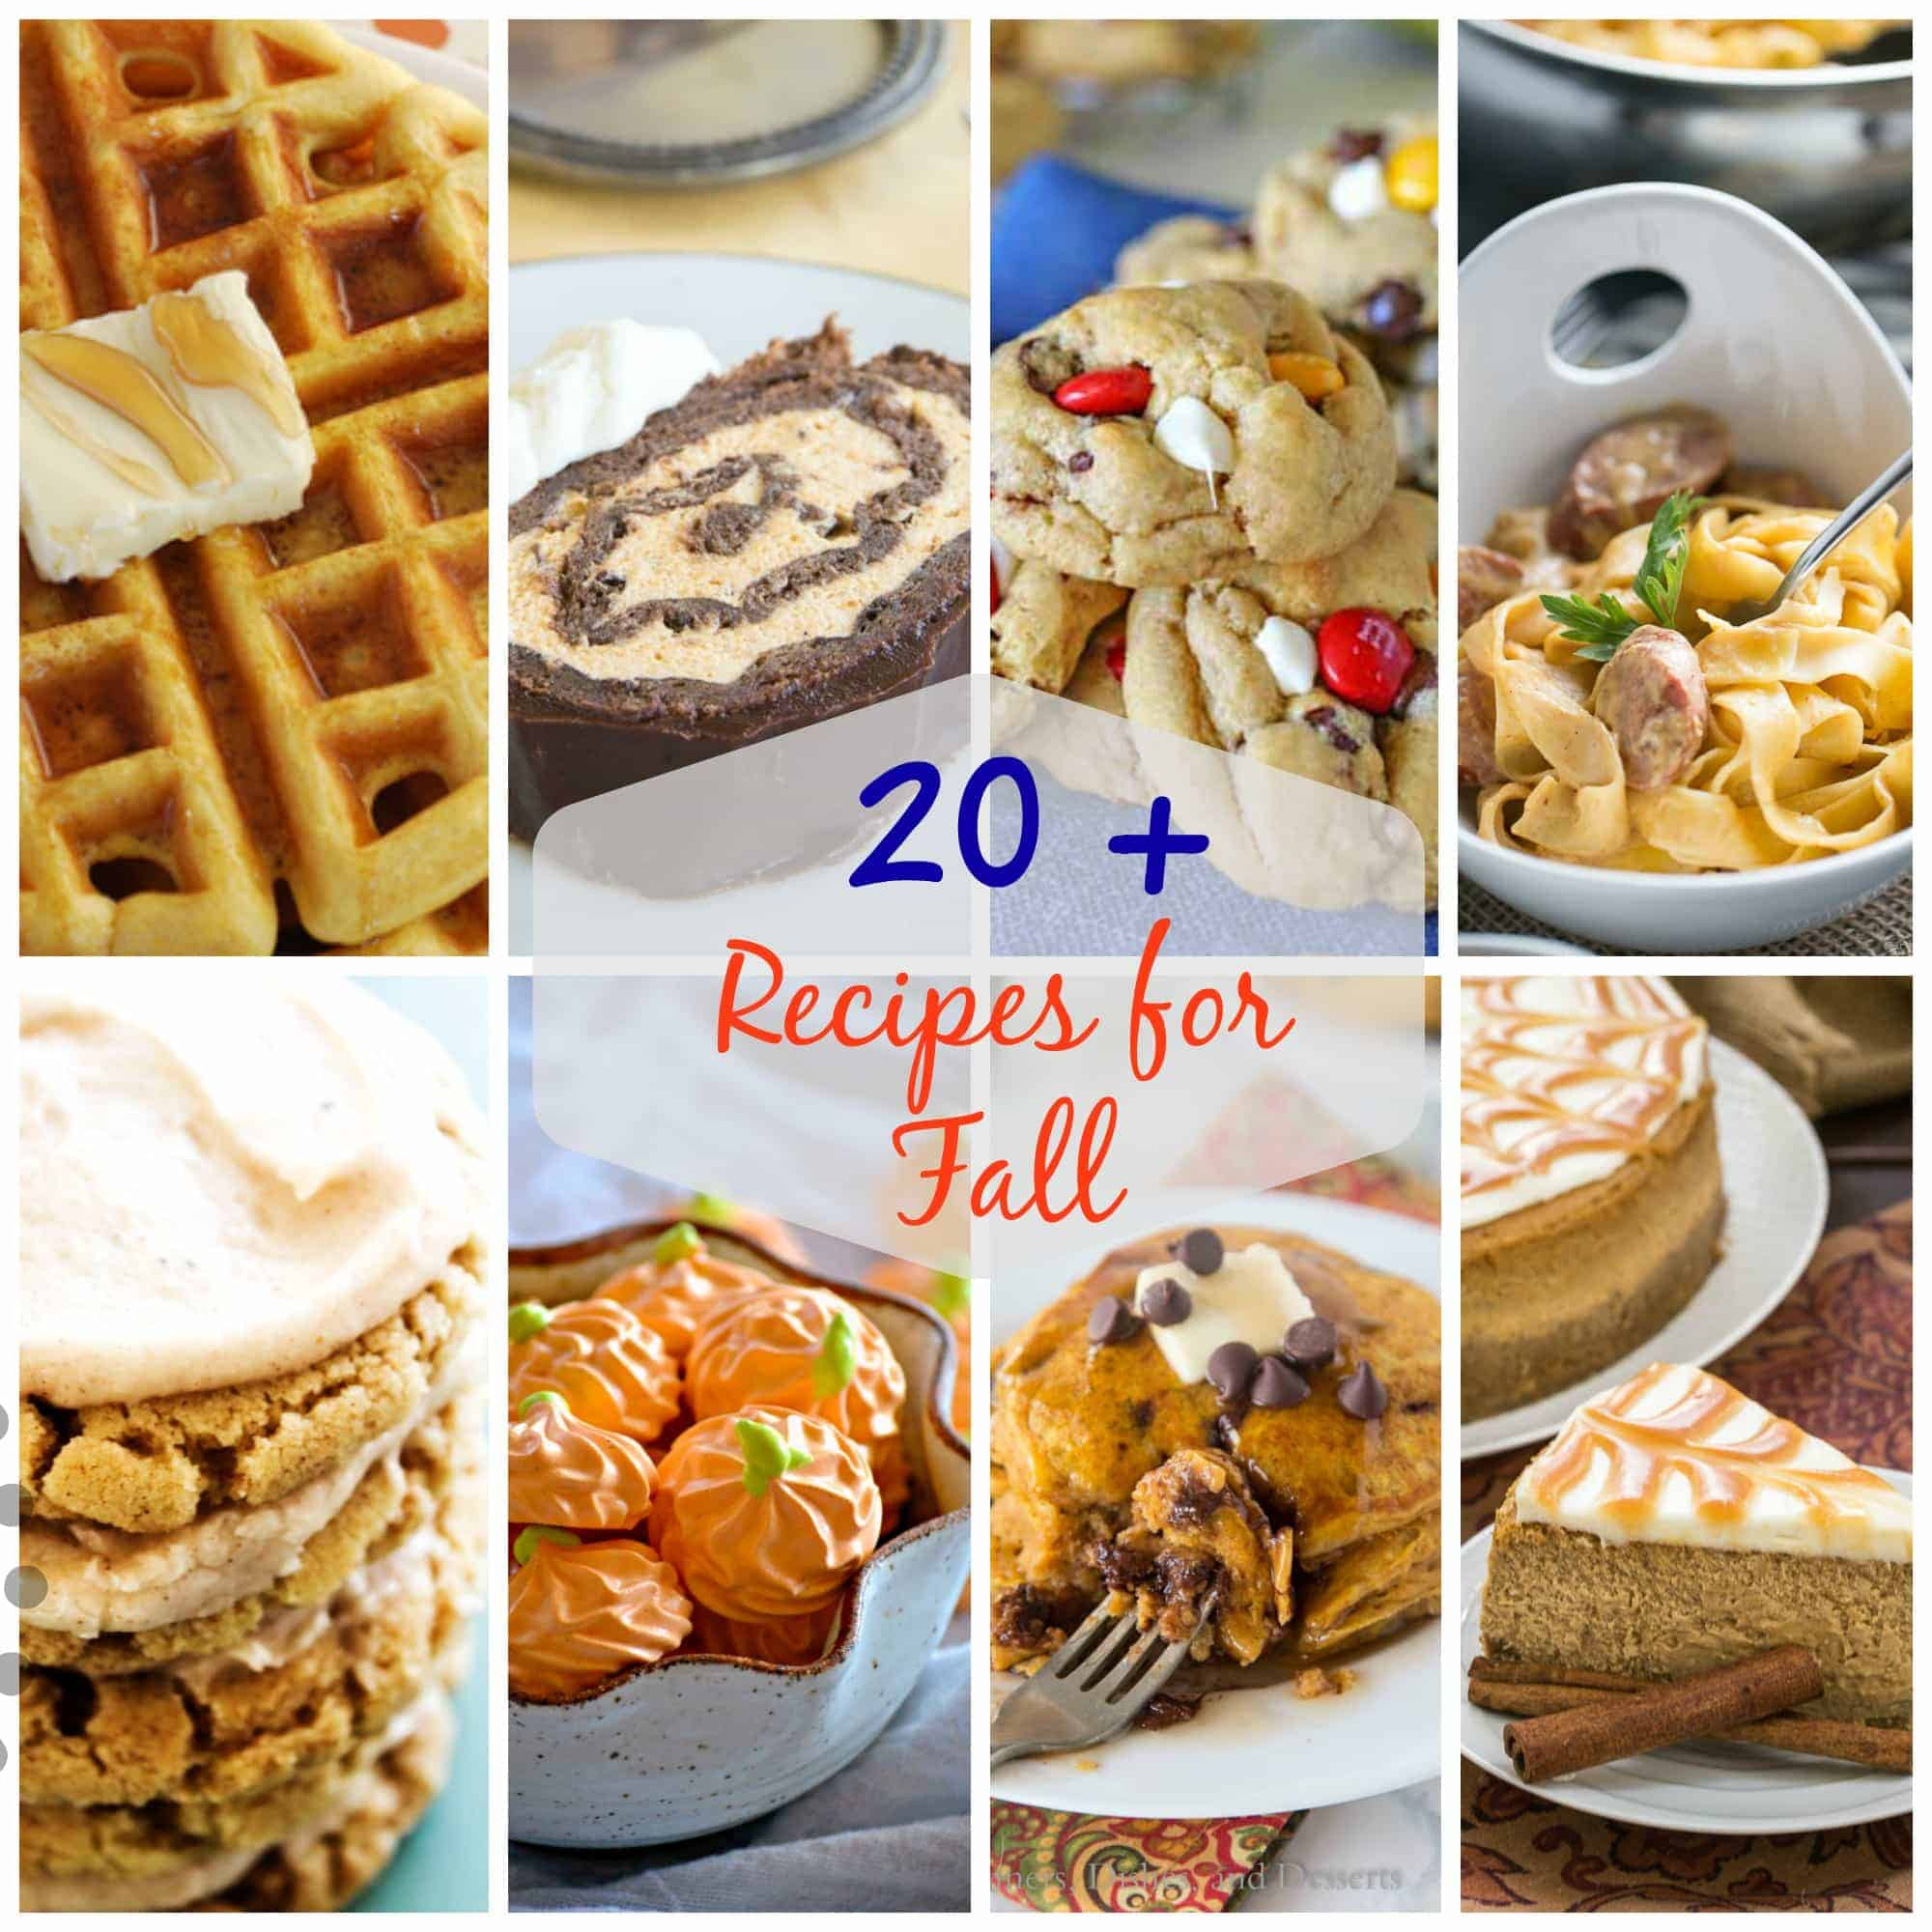 With these 20+ Recipes for Fall from breakfast to dessert and everything in between, this collection is sure to give you all the tastes of the season. Put some smiles on the faces of your family and friends when you make these recipes.